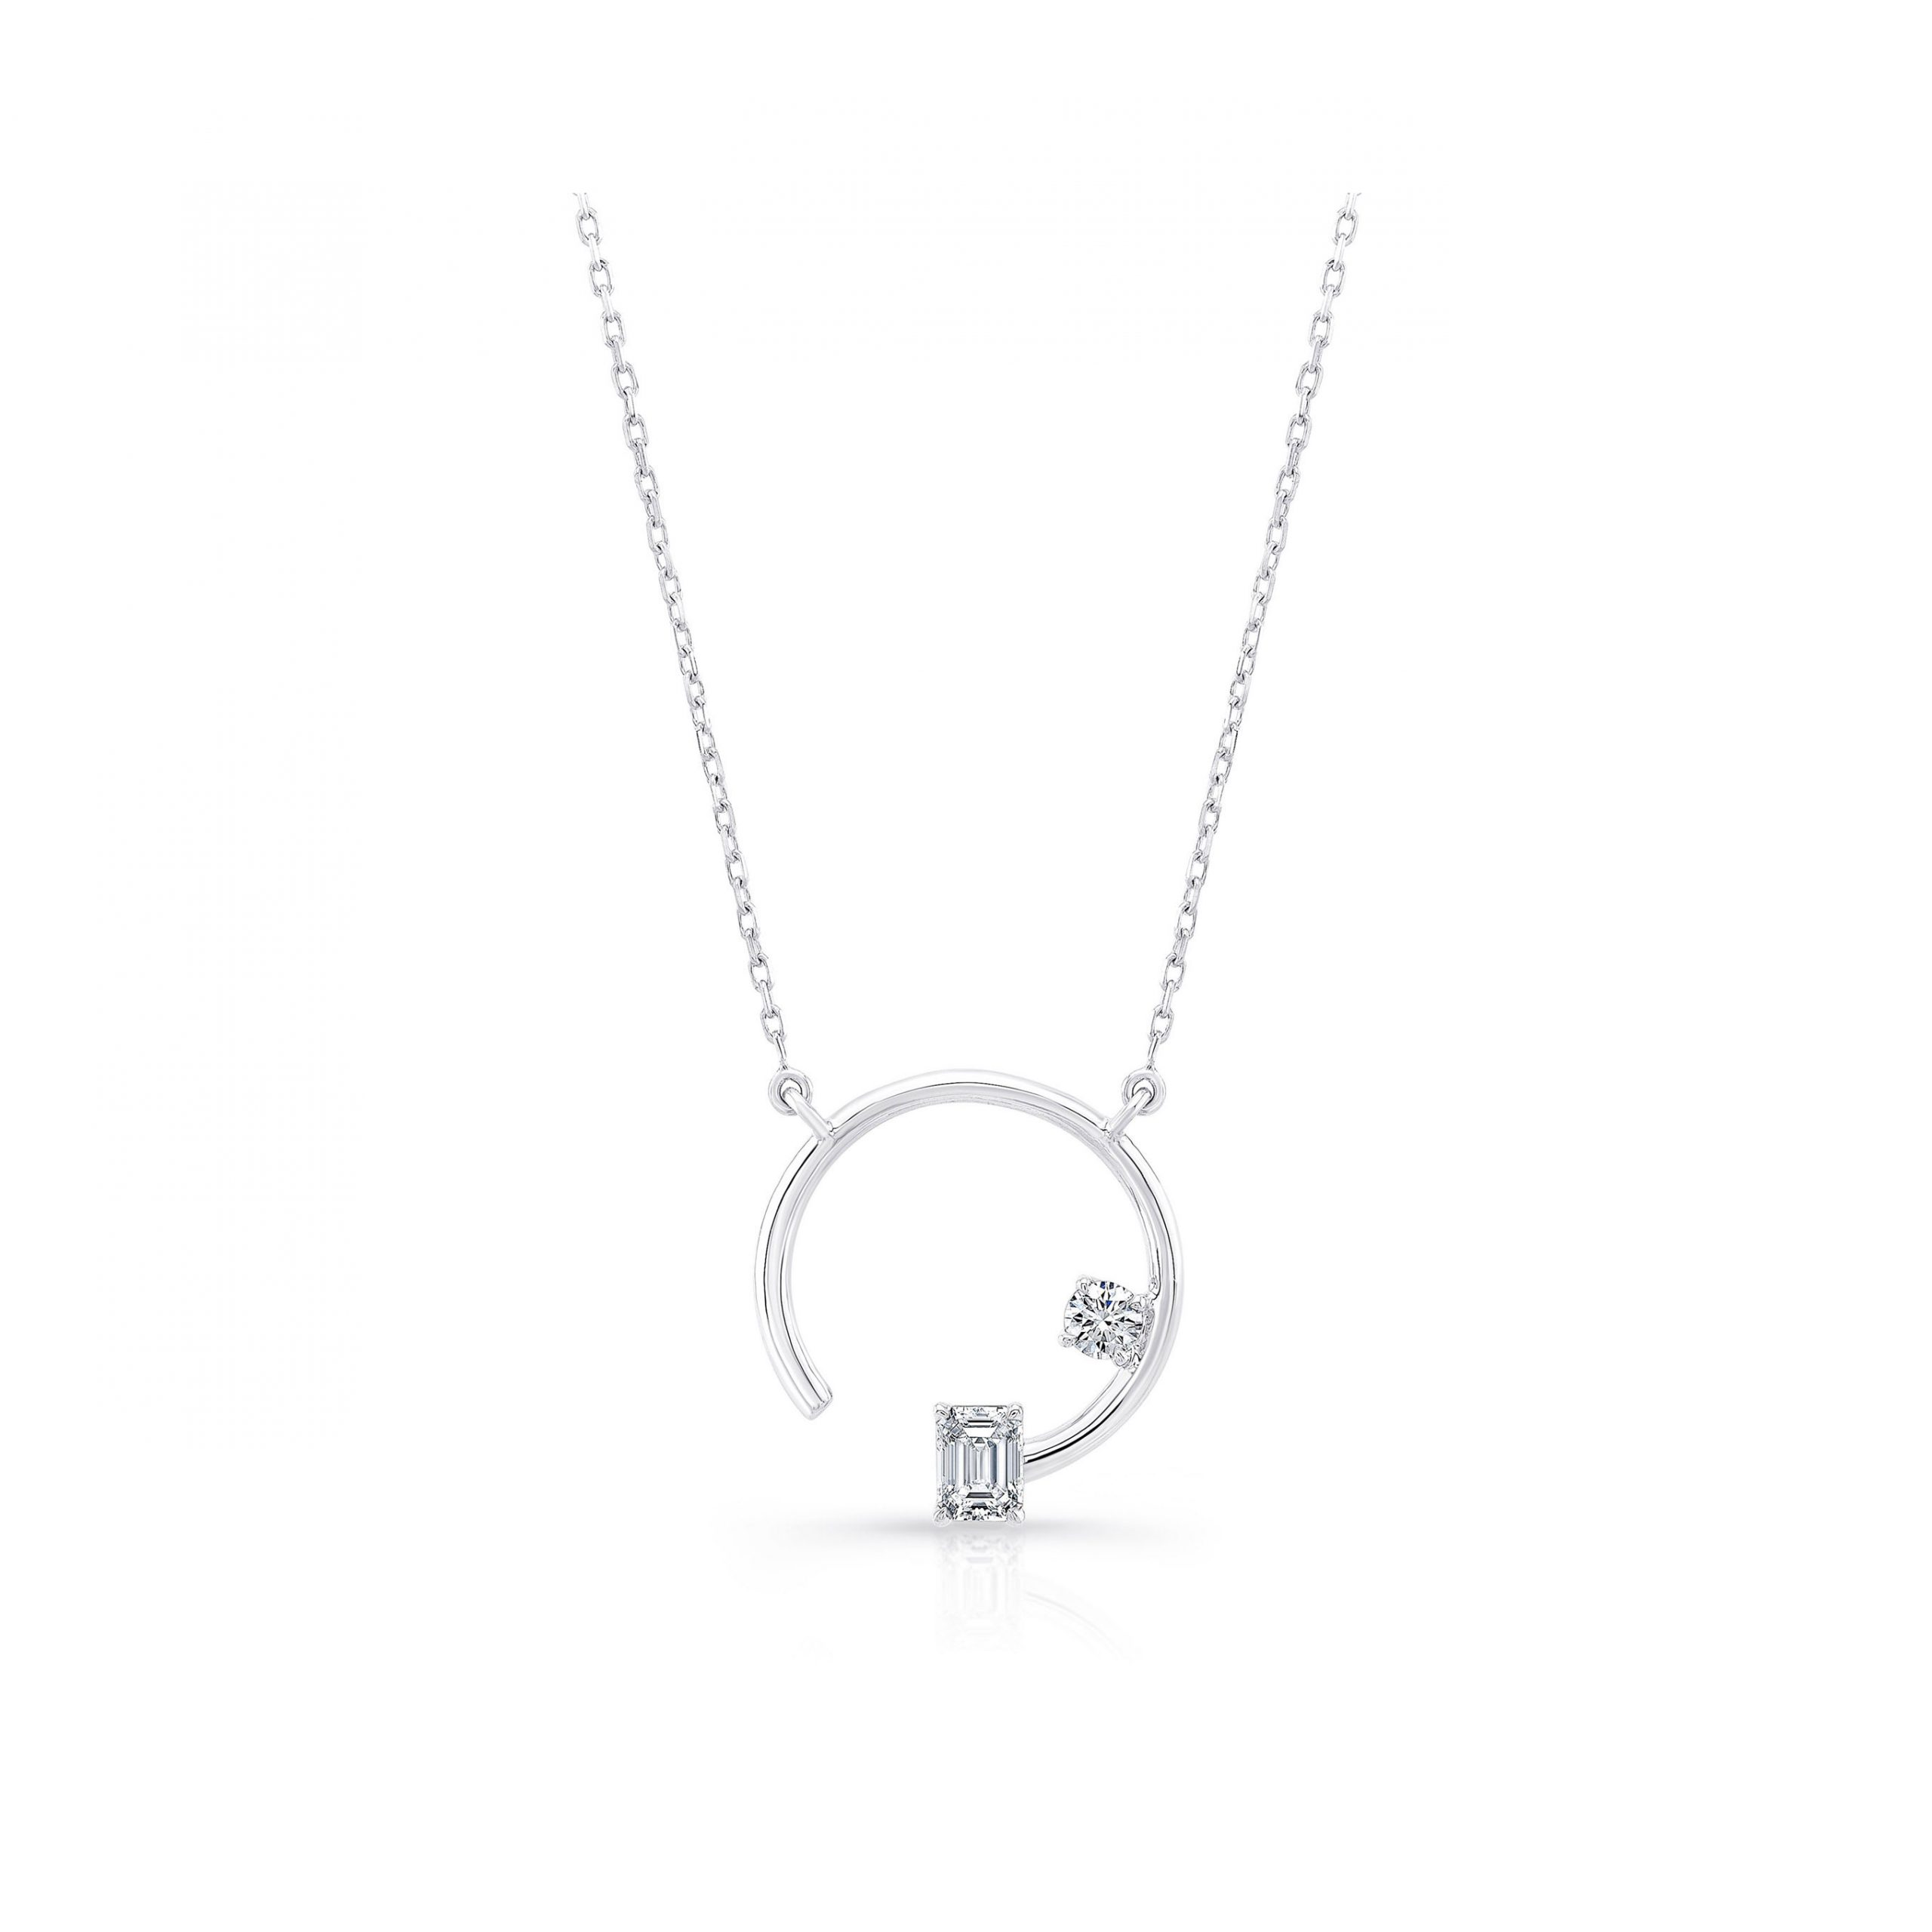 Celeste Mixed Diamond Asymmetric Necklace, emerald & round brilliant in 18k White Gold Front View by Oui by Jean Dousset